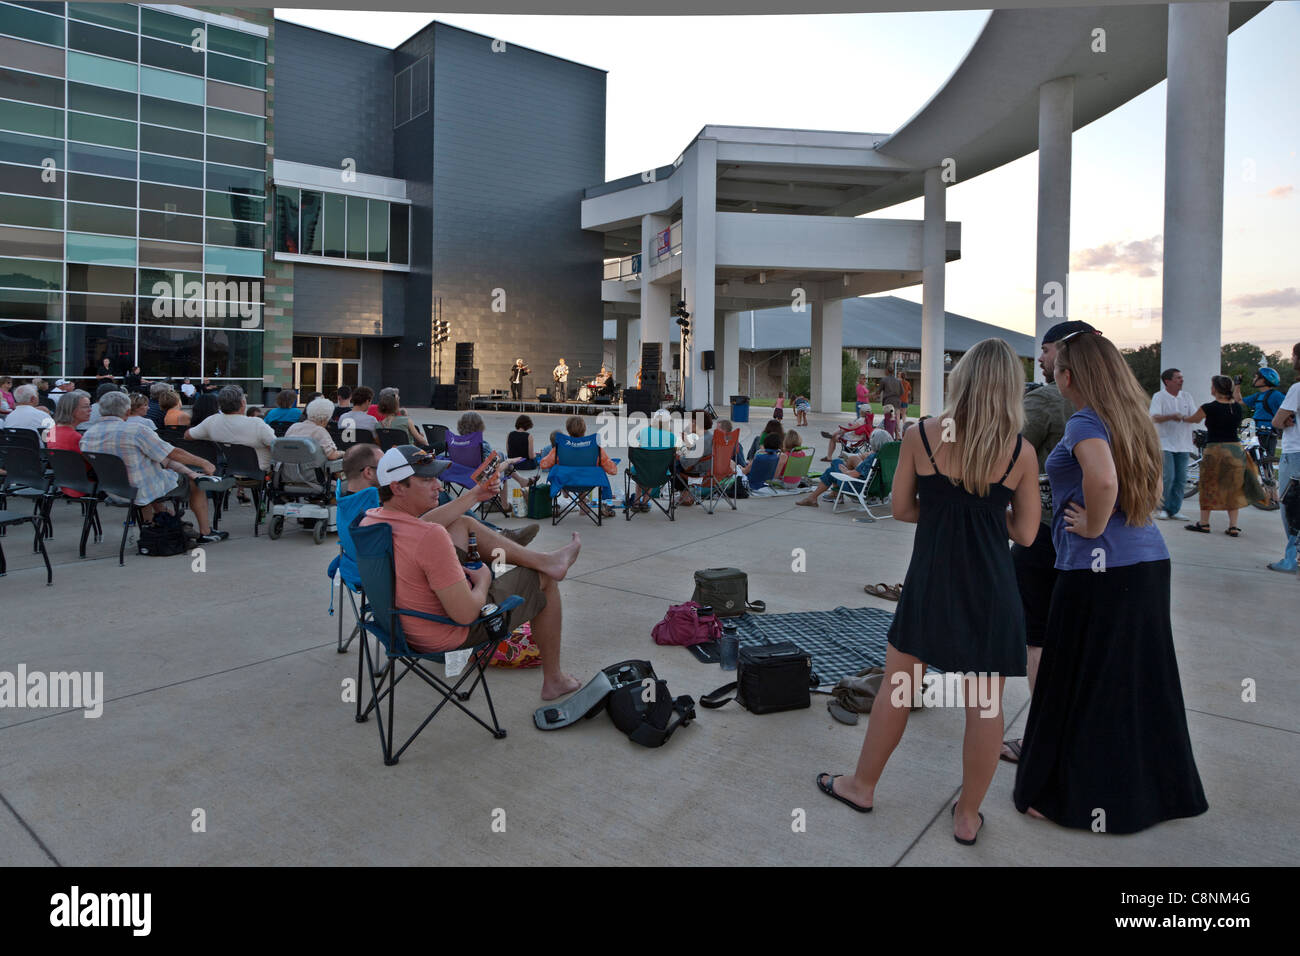 Concert, Long Center For The Performing Arts - Stock Image